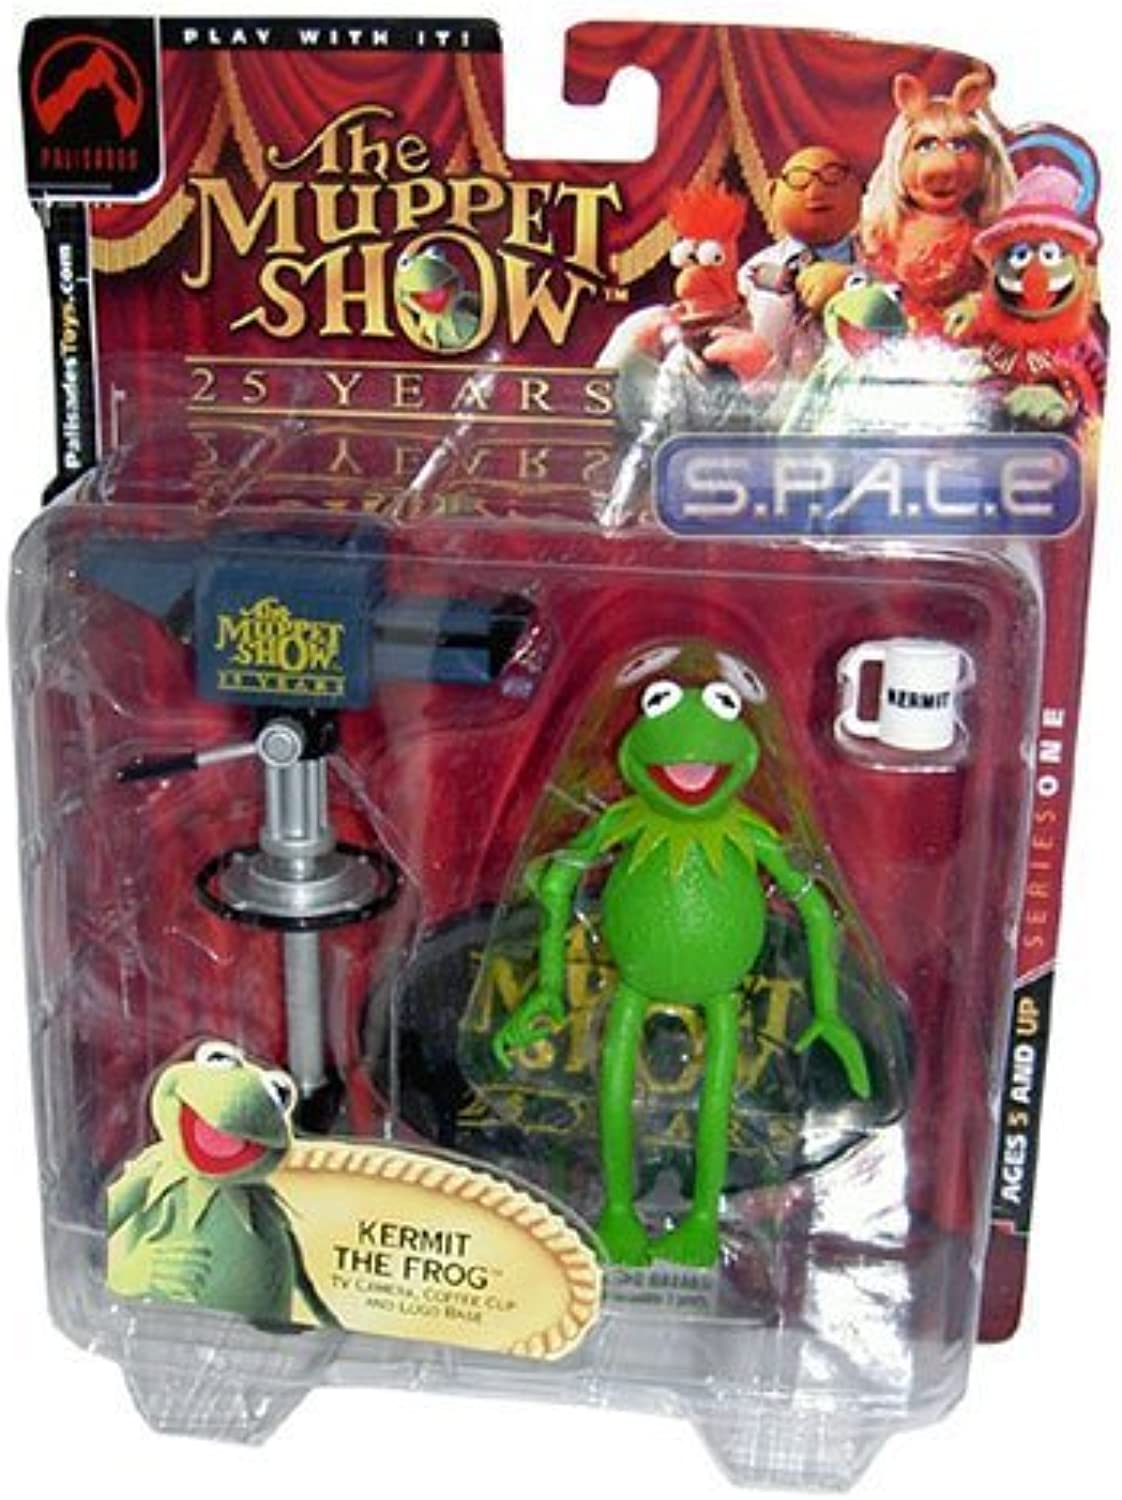 The Muppets Series 1 Action Figure Kermit The Frog by Palisades